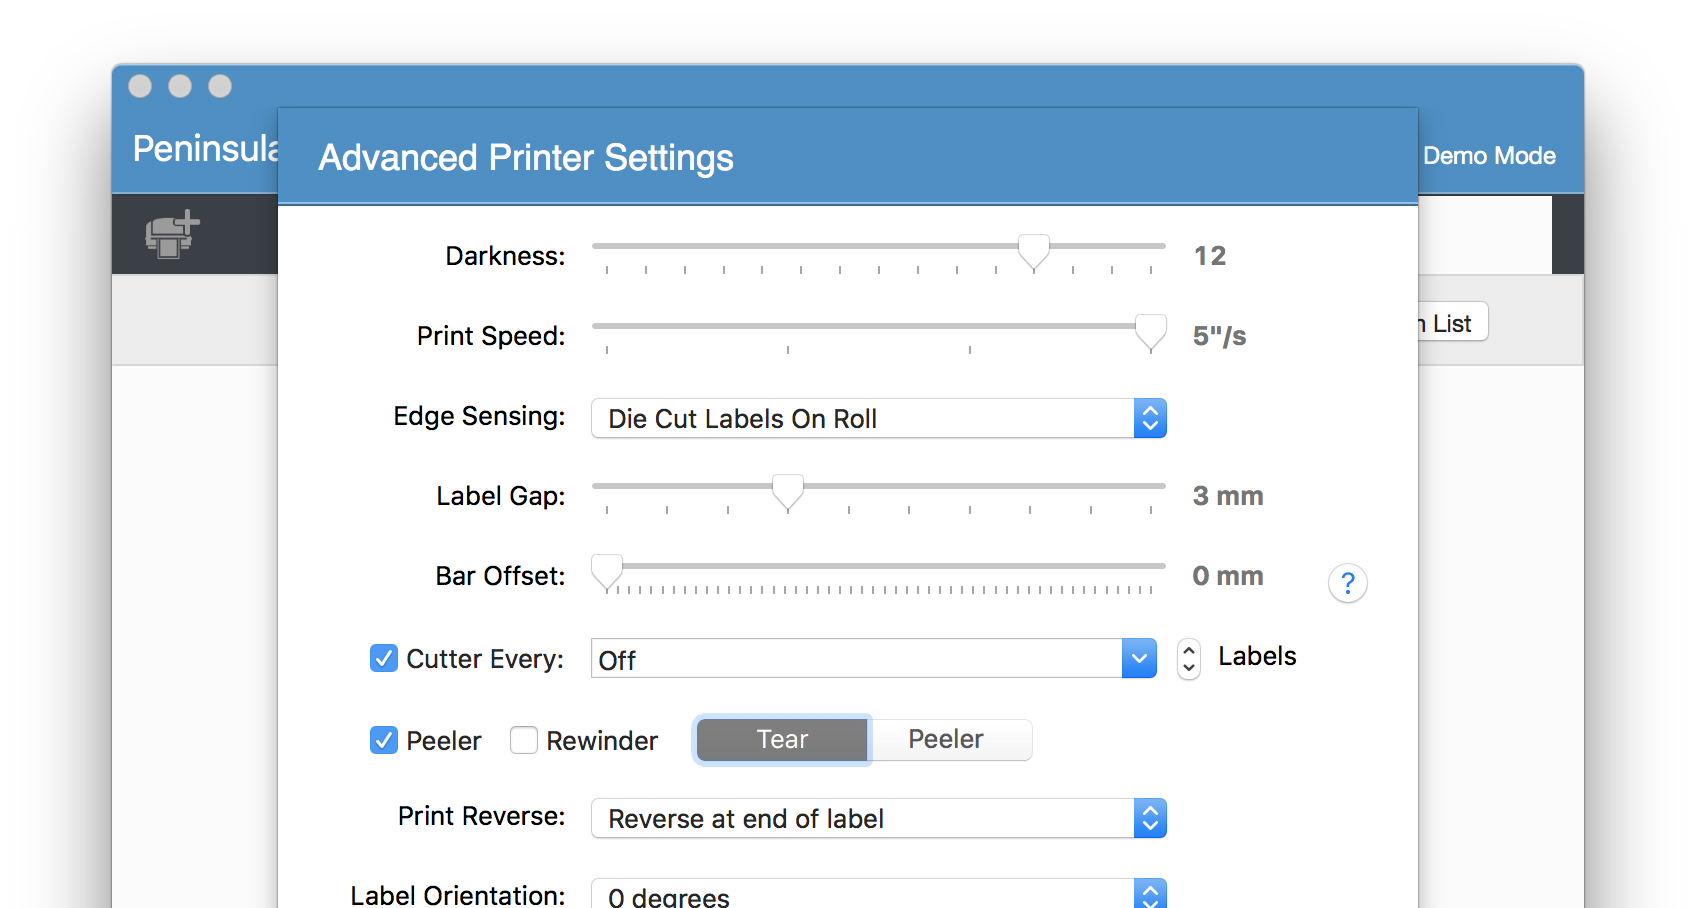 How To Change Printer Settings On Iphone